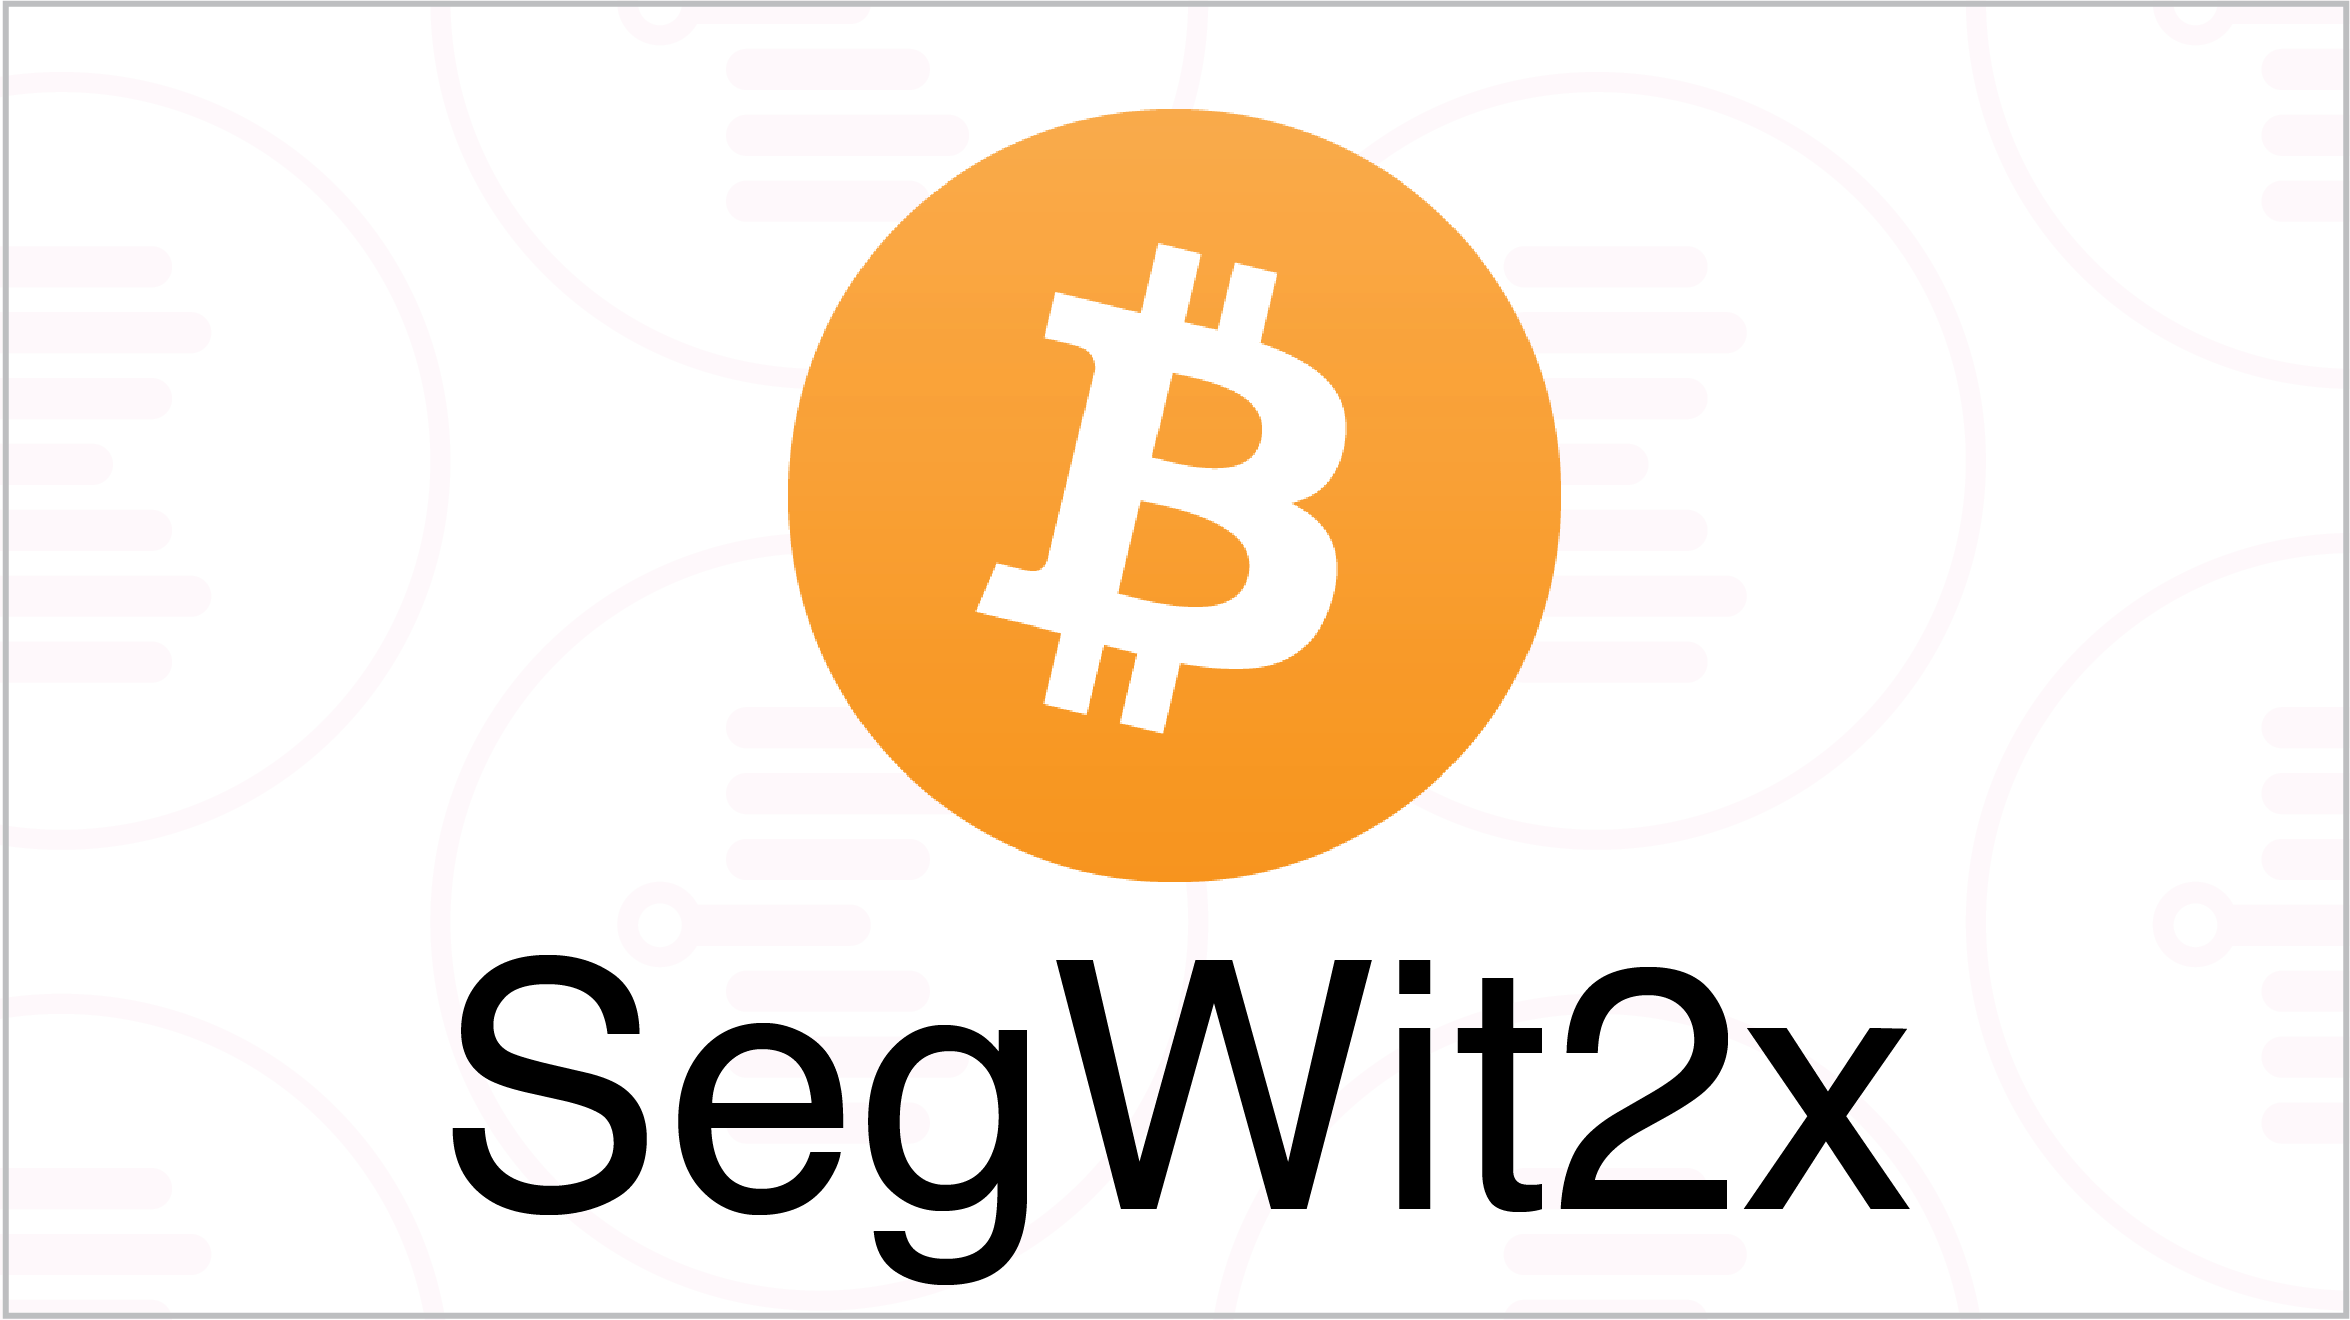 Segwit2x fork what is it about what can we expect and whos segwit2x fork nya you may have come across these terms in the past few months or weeks but still dont understand whats happening ccuart Choice Image